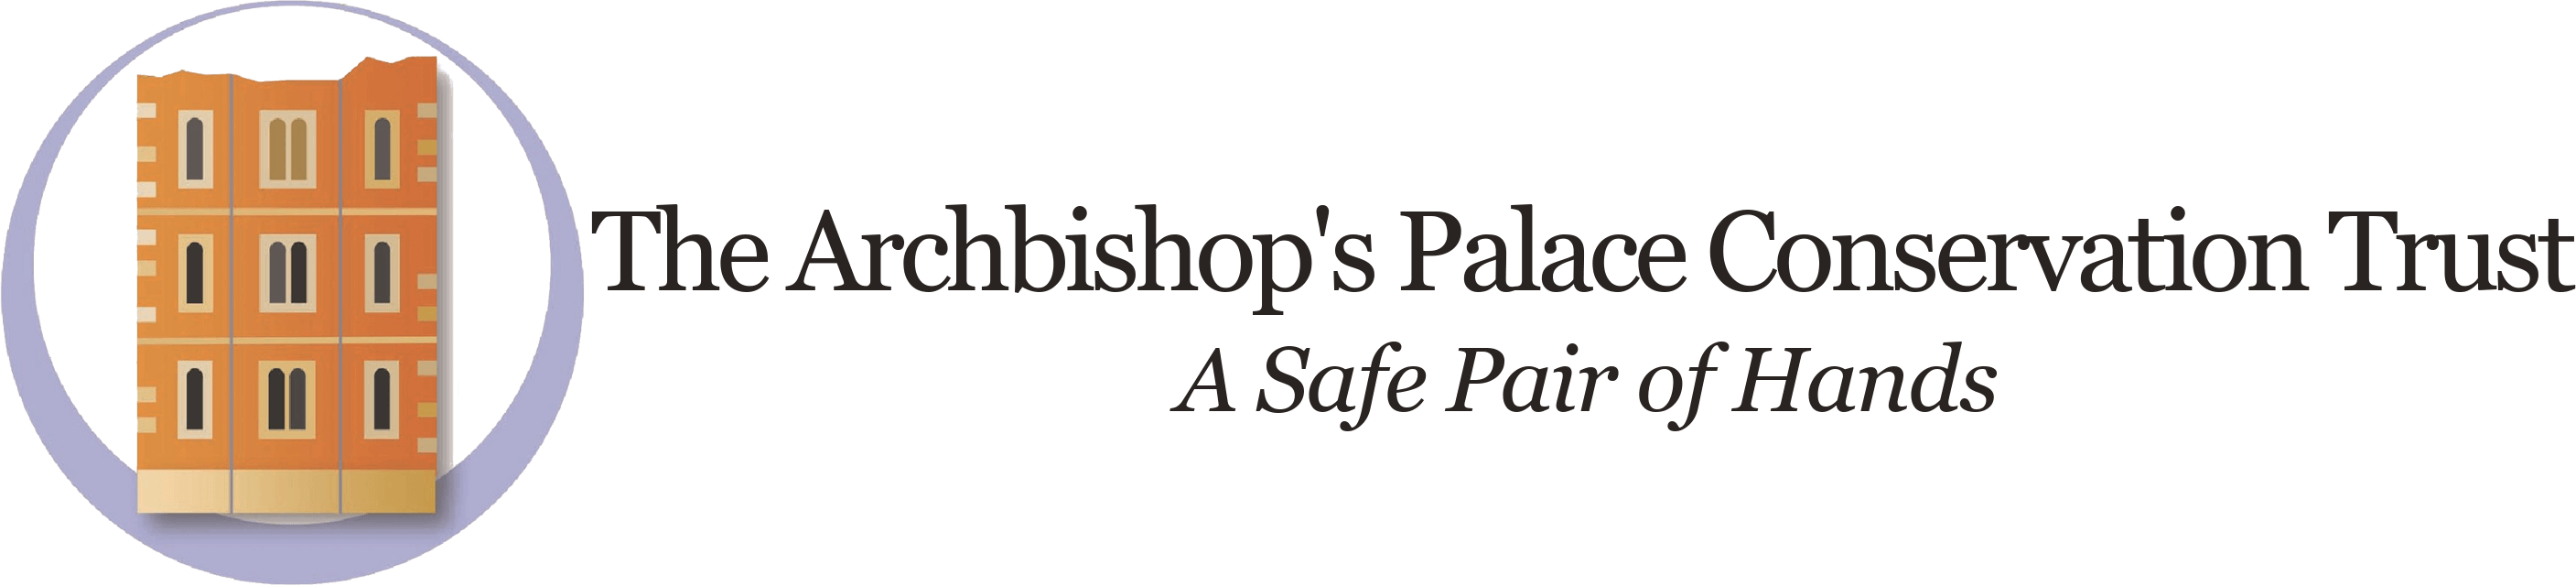 The Archbishop's Palace Conservation Trust